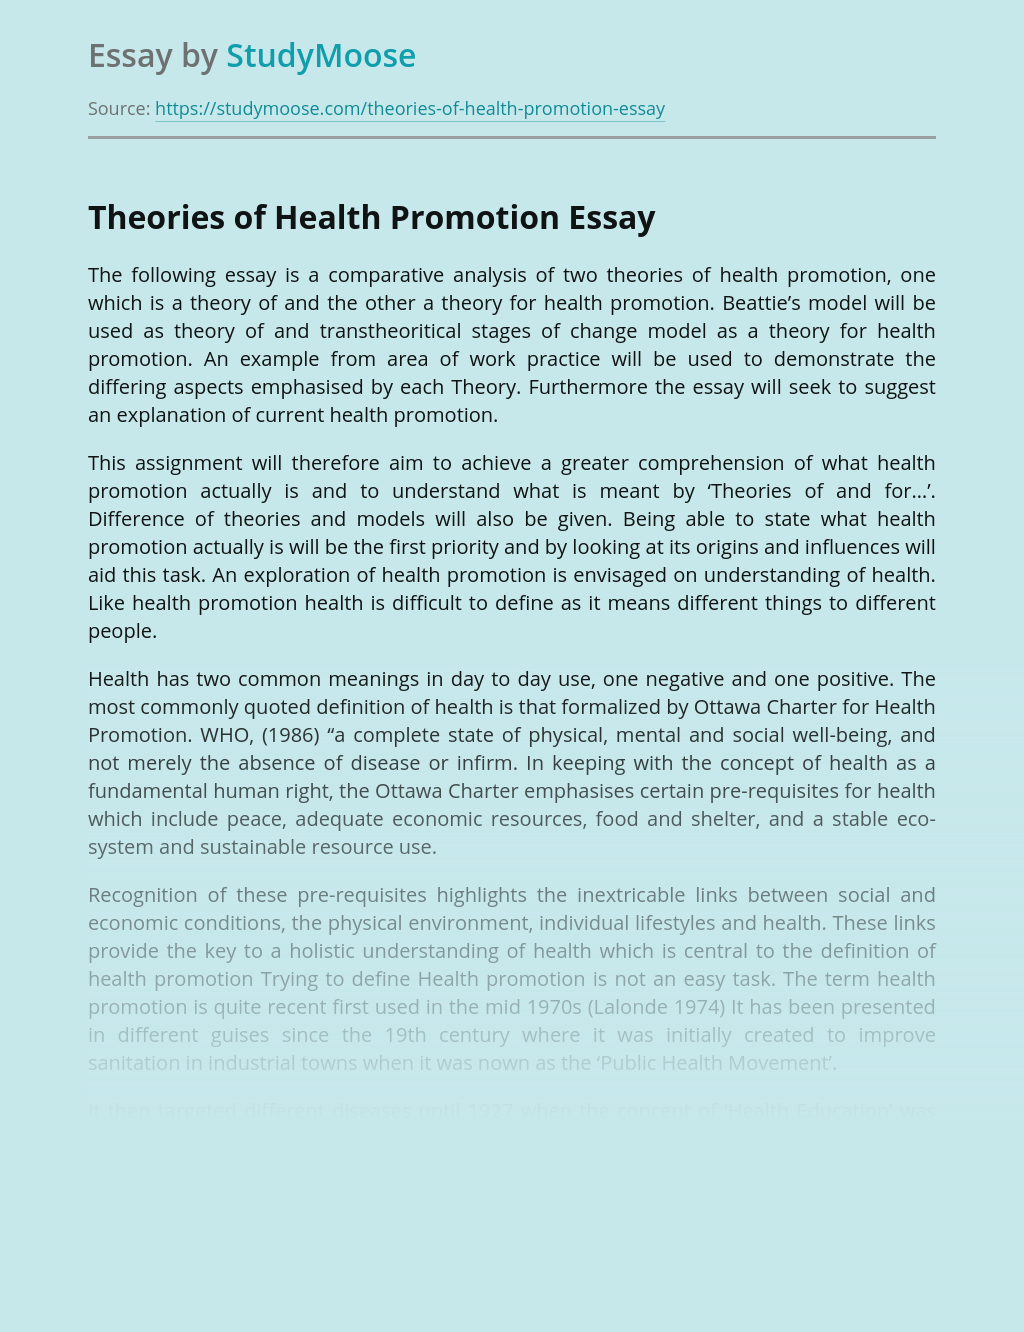 Theories of Health Promotion